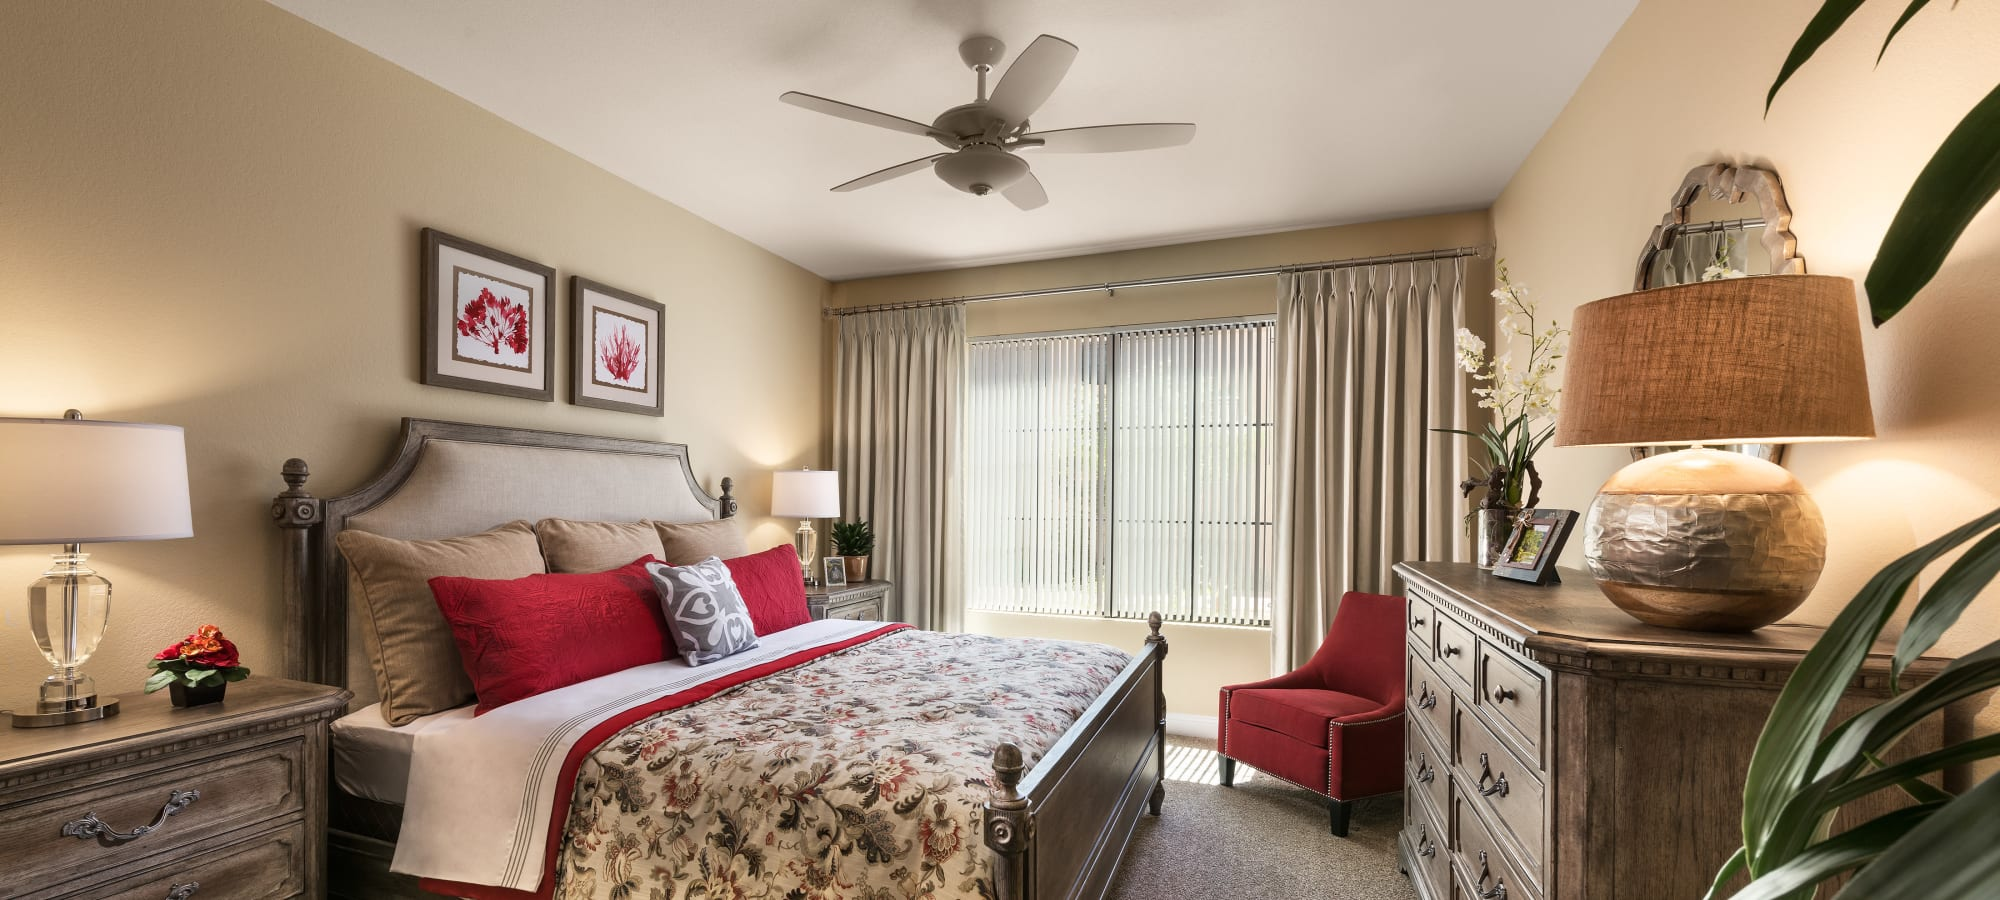 Beautiful bedroom with ceiling fan at San Portales in Scottsdale, Arizona